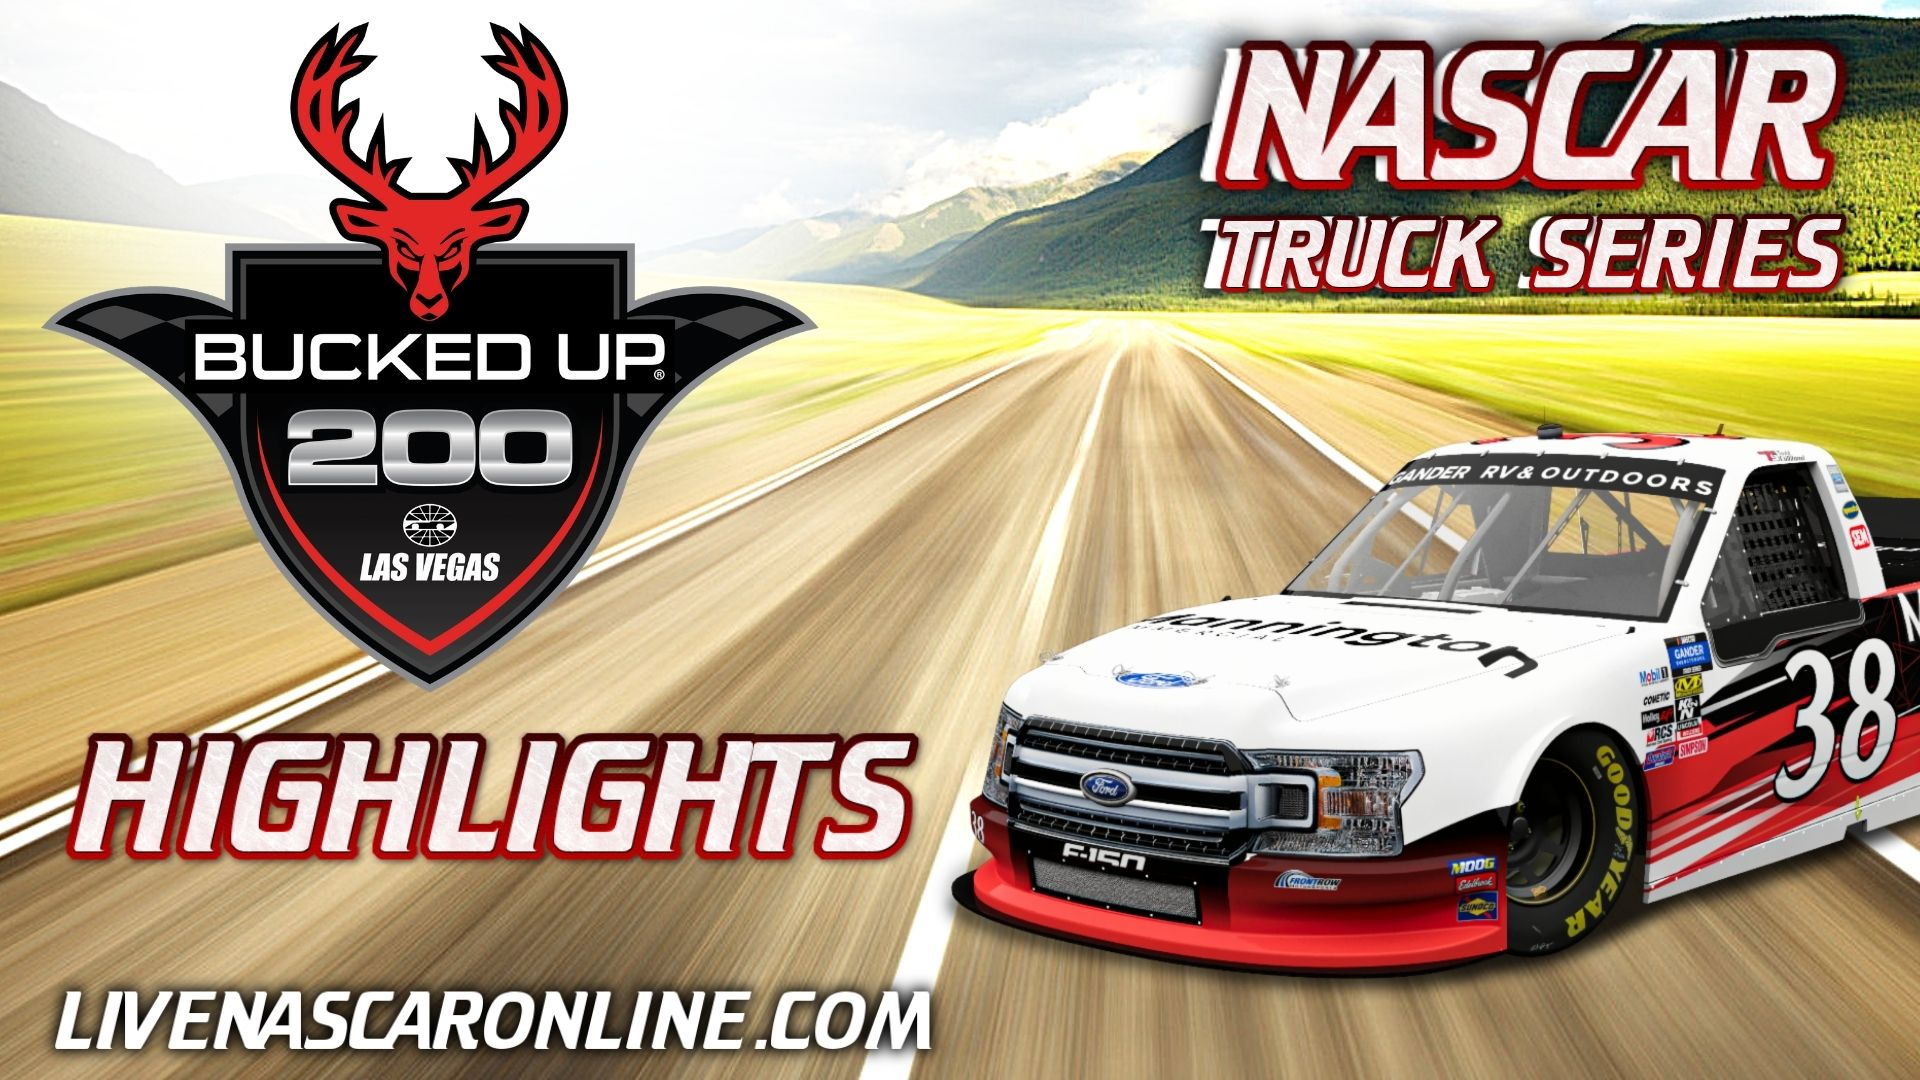 Bucked Up 200 Highlights 2021 Nascar Truck Series